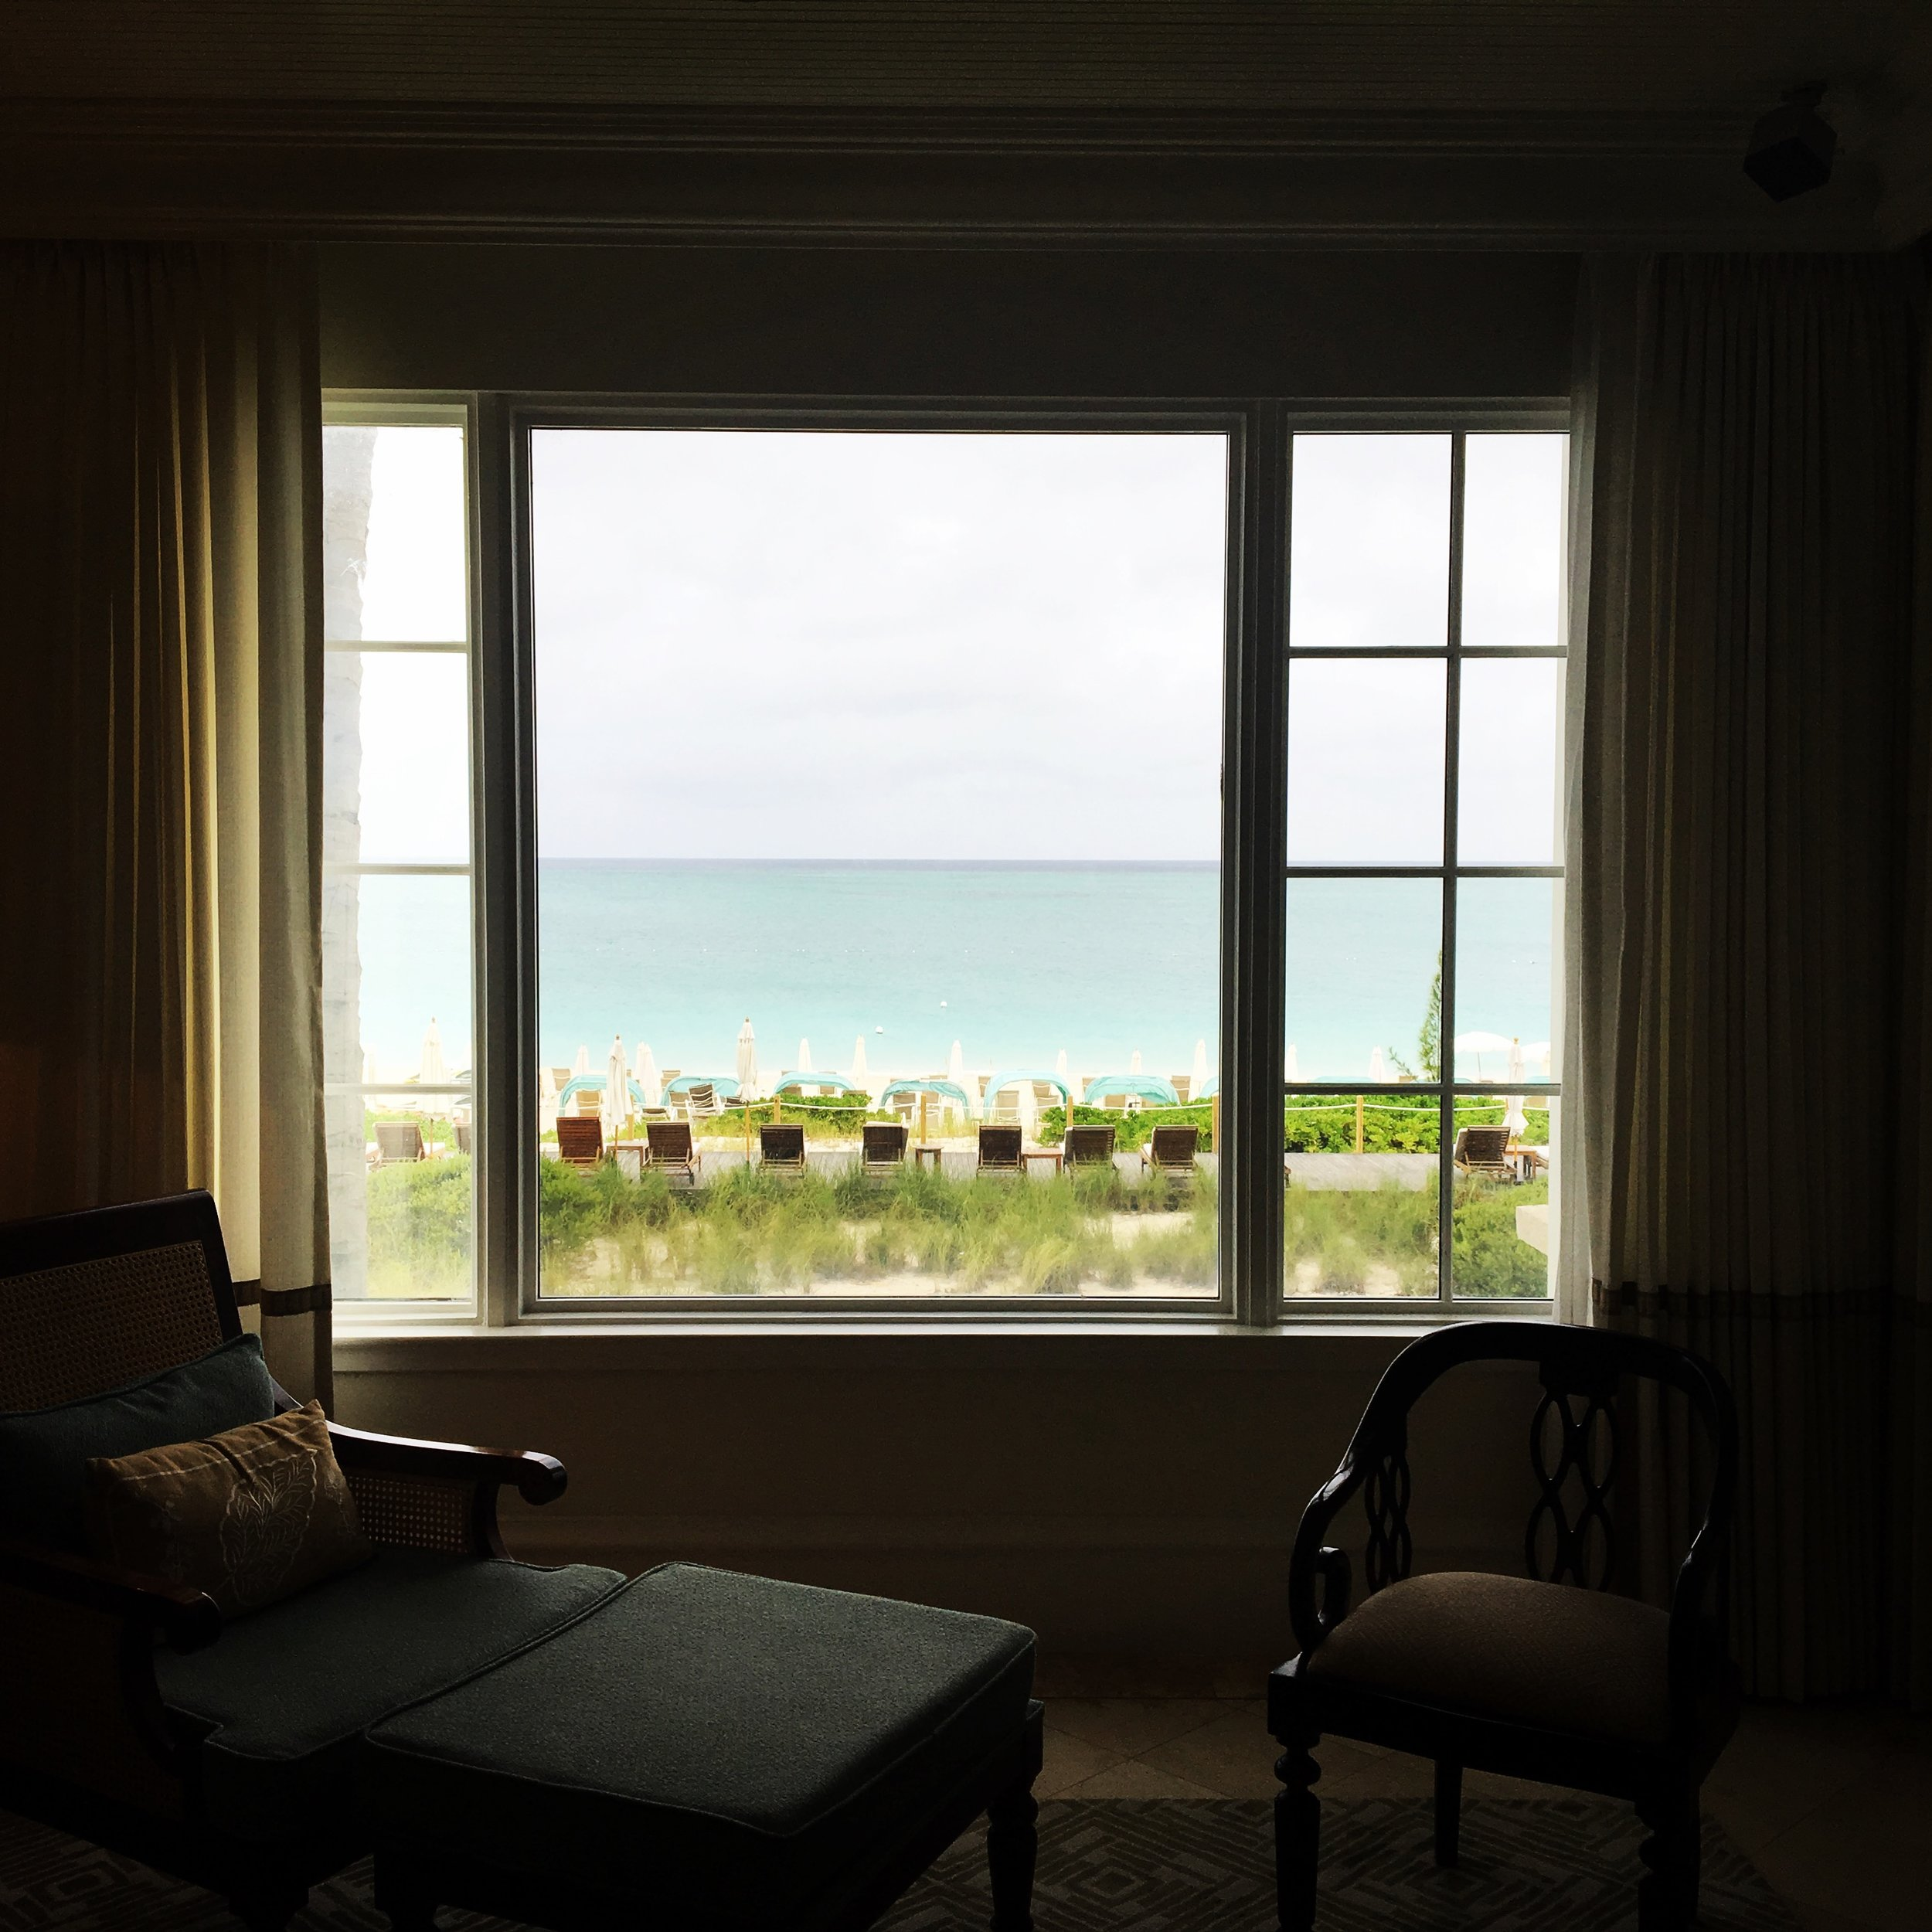 The view from the Ocean Front One Bedroom Suite is not too shabby.